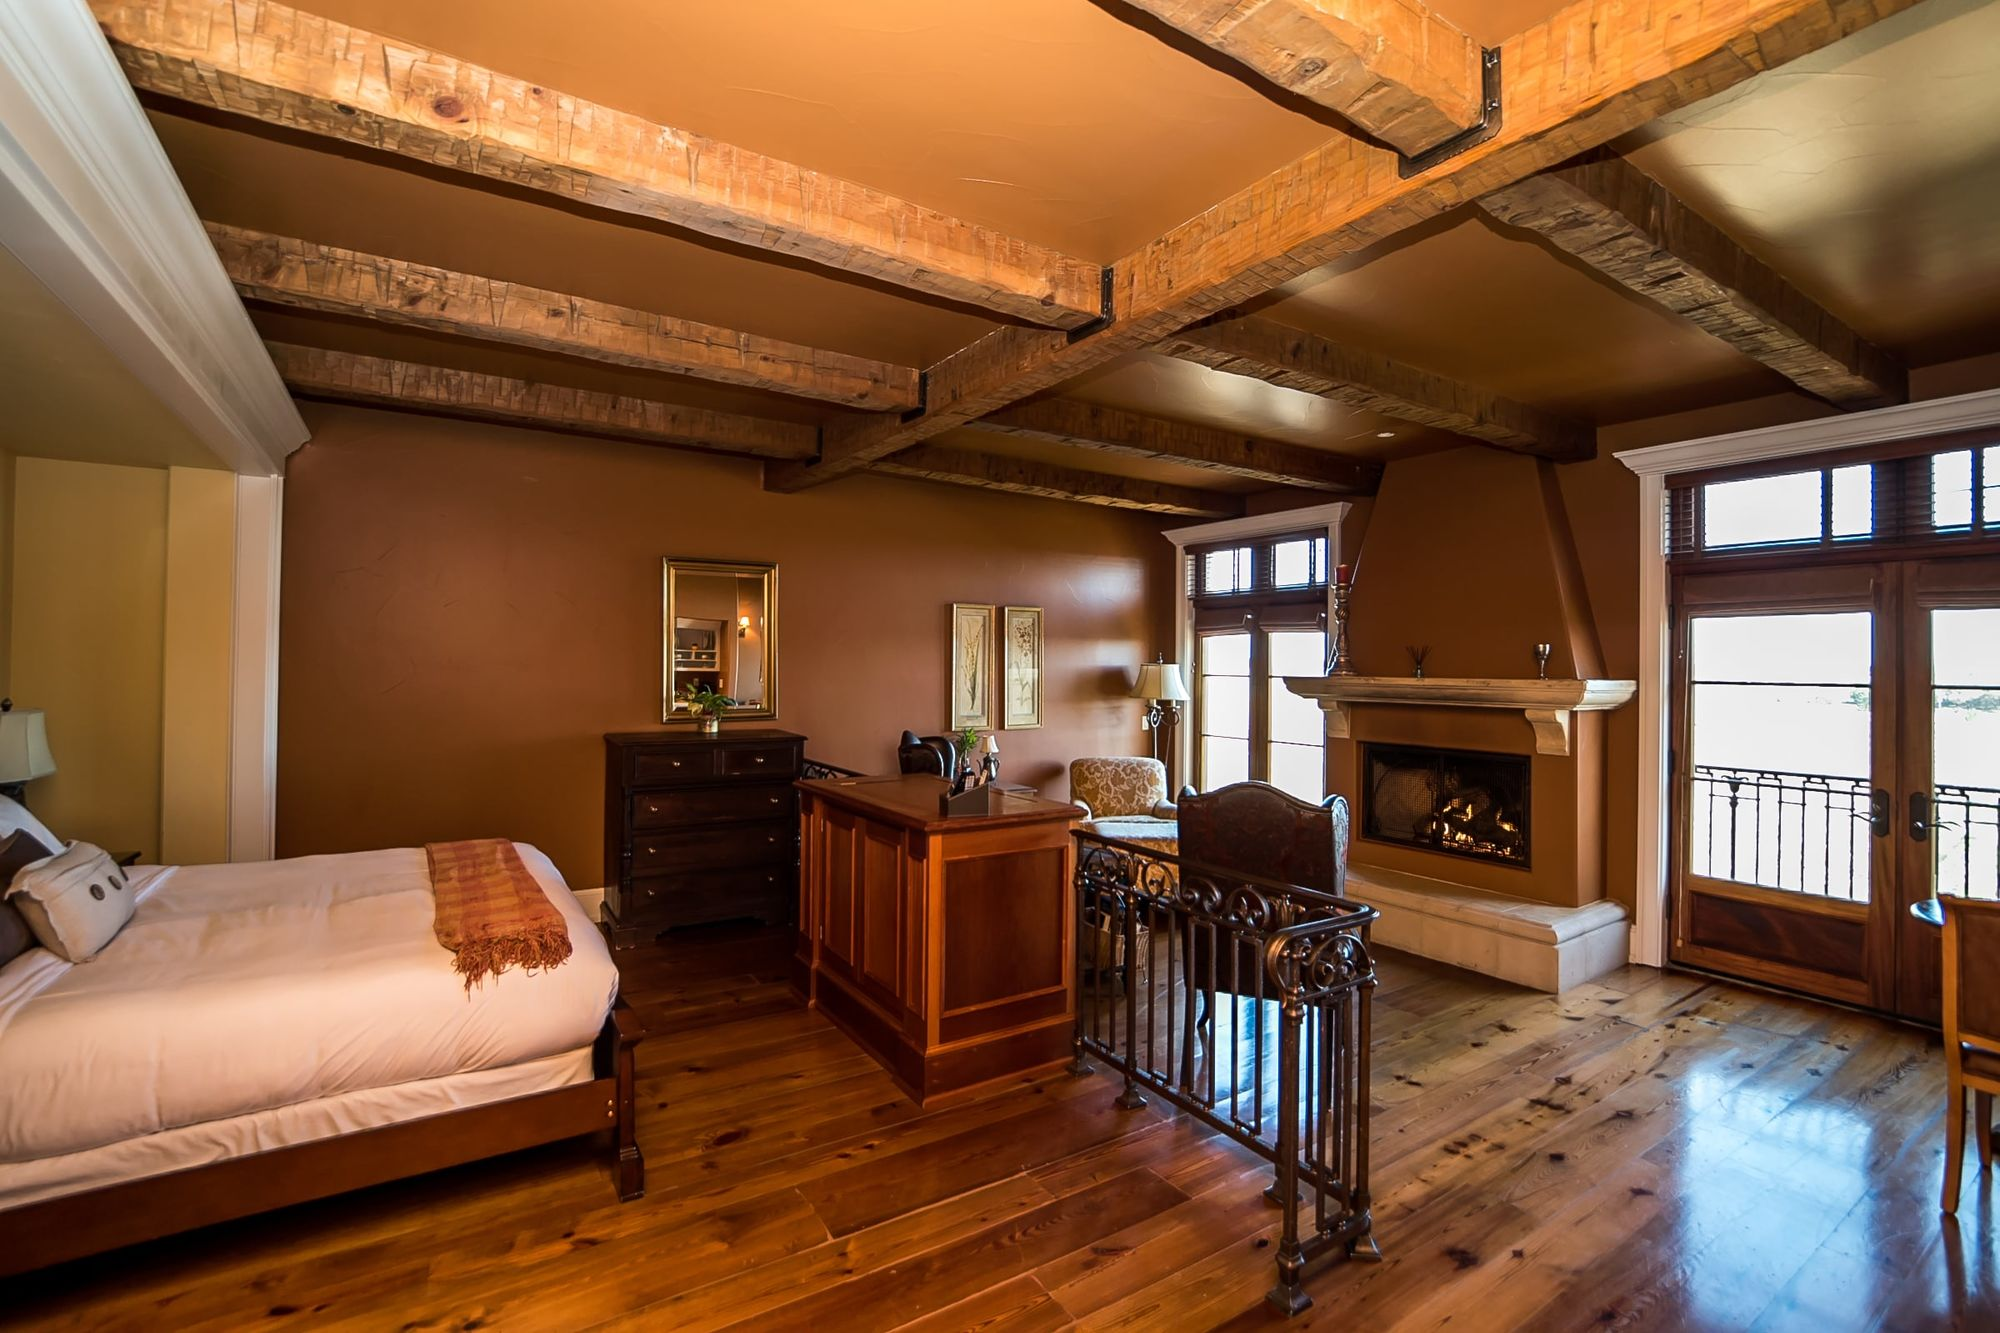 Combined bed room and sitting room with rafters on the ceiling